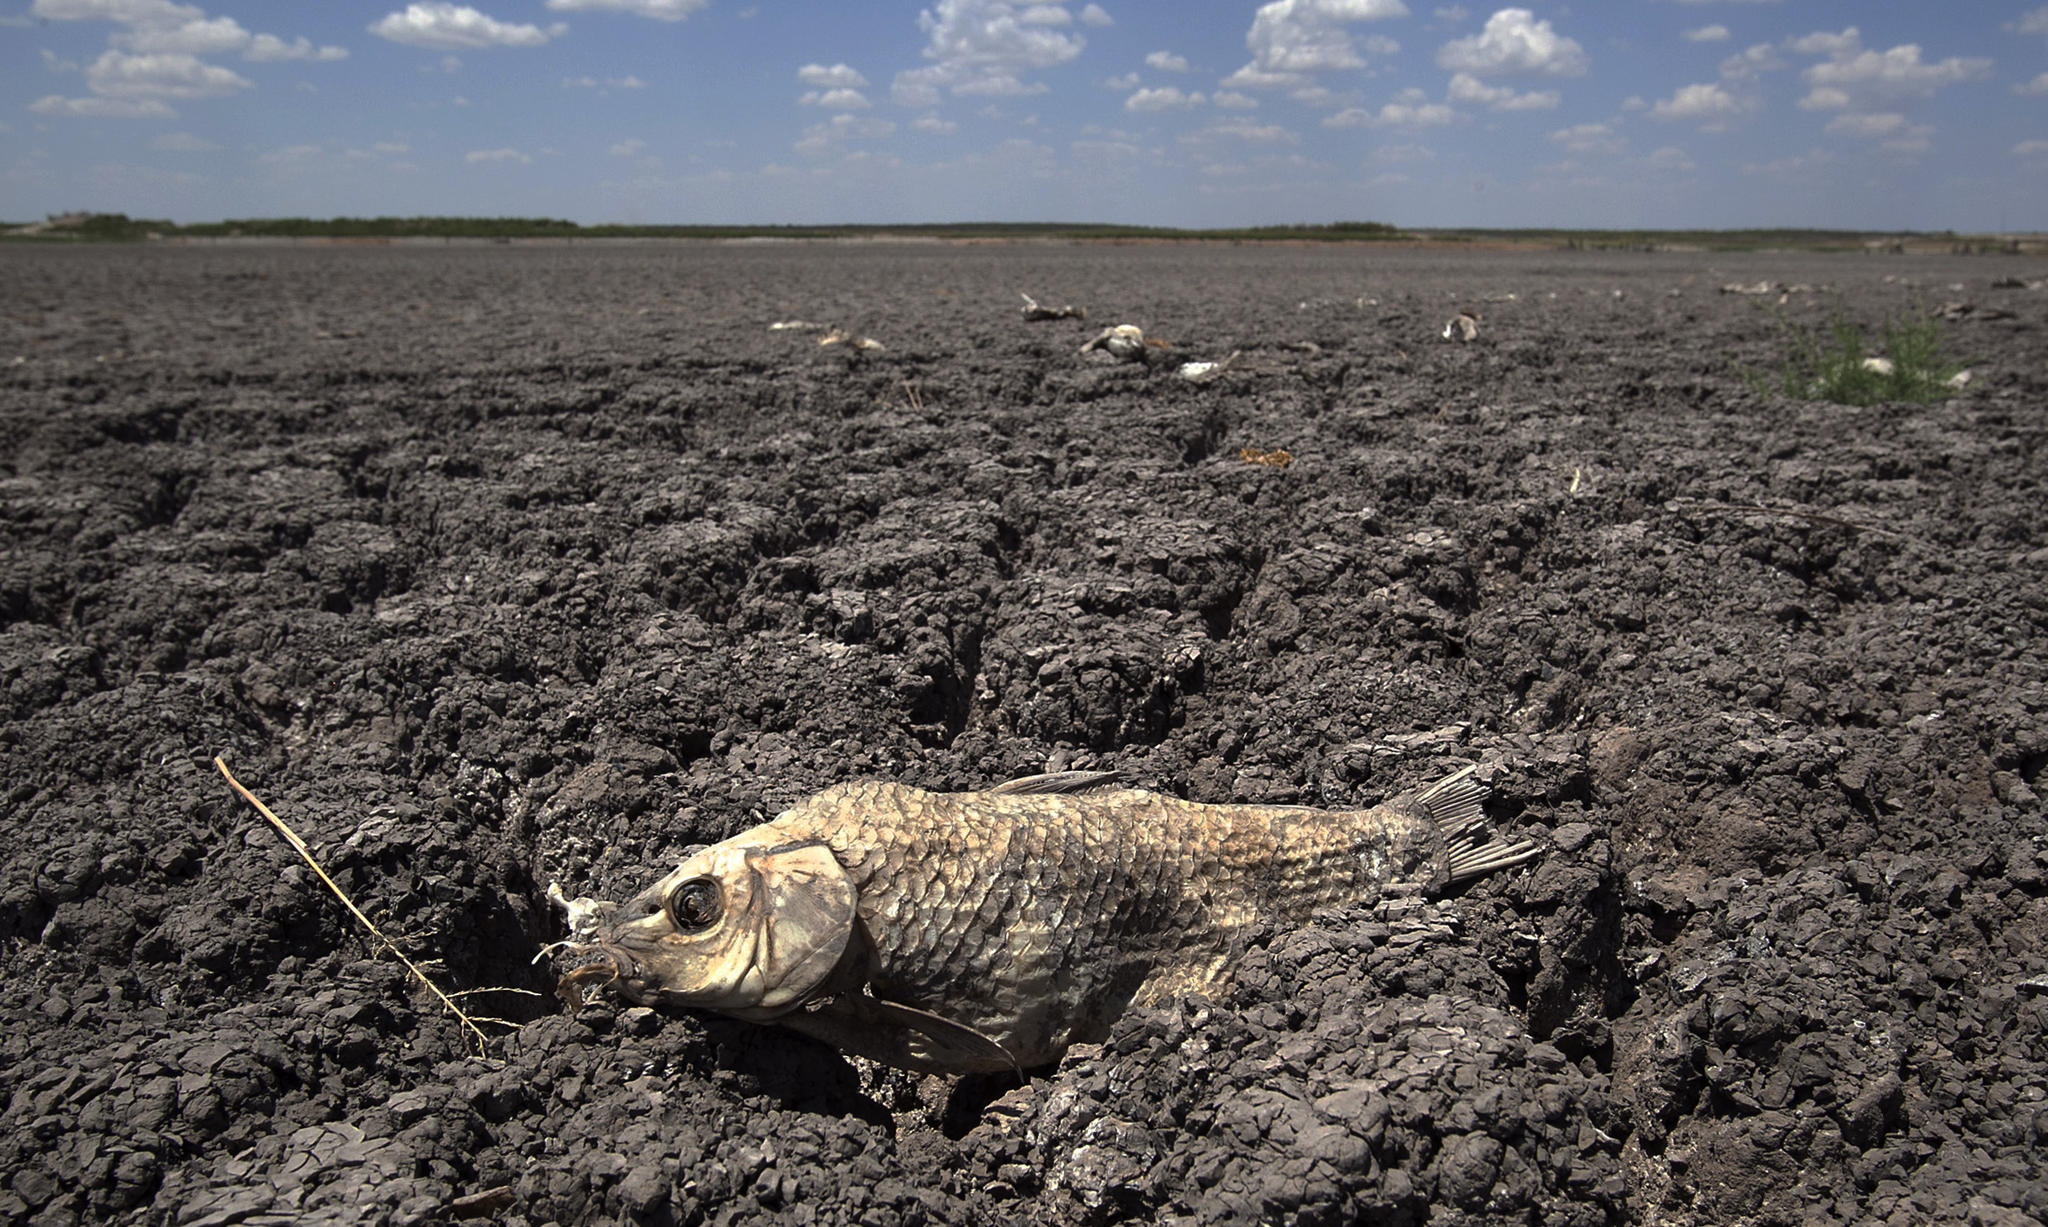 The remains of a carp is seen on the lake dried out lake bed of O.C. Fisher Lake Wednesday, Aug. 3, 2011, in San Angelo, Texas. A bacteria called Chromatiaceae has turned the 1-to-2 acres of lake water remaining the color red. A combination of the long periods of 100 plus degree days and the lack of rain in the drought -stricken region has dried up the lake that once spanned over 5400 acres.  (AP Photo/Tony Gutierrez)